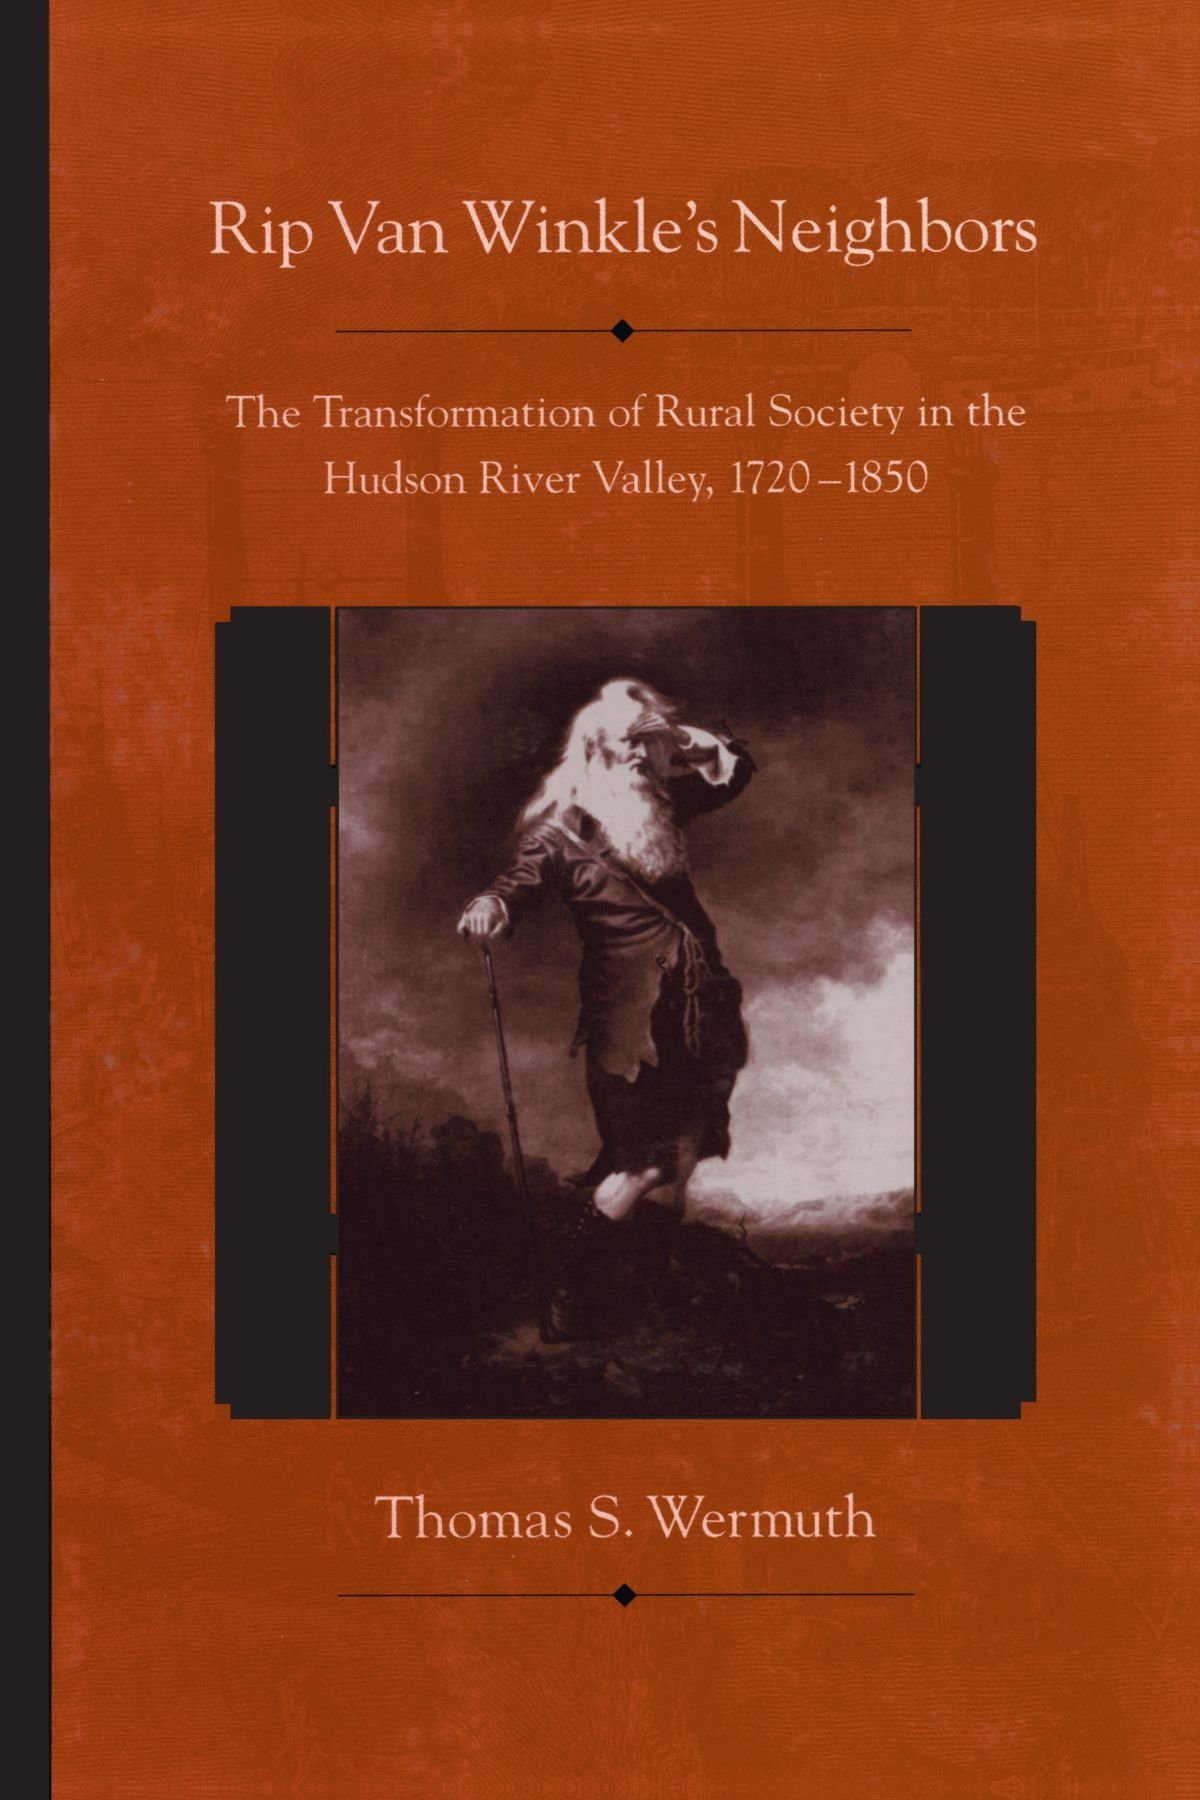 Rip Van Winkle's Neighbors: The Transformation of Rural Society in the Hudson River Valley, 1720-1850 (SUNY series, An American Region:  Studies in the Hudson Valley) pdf